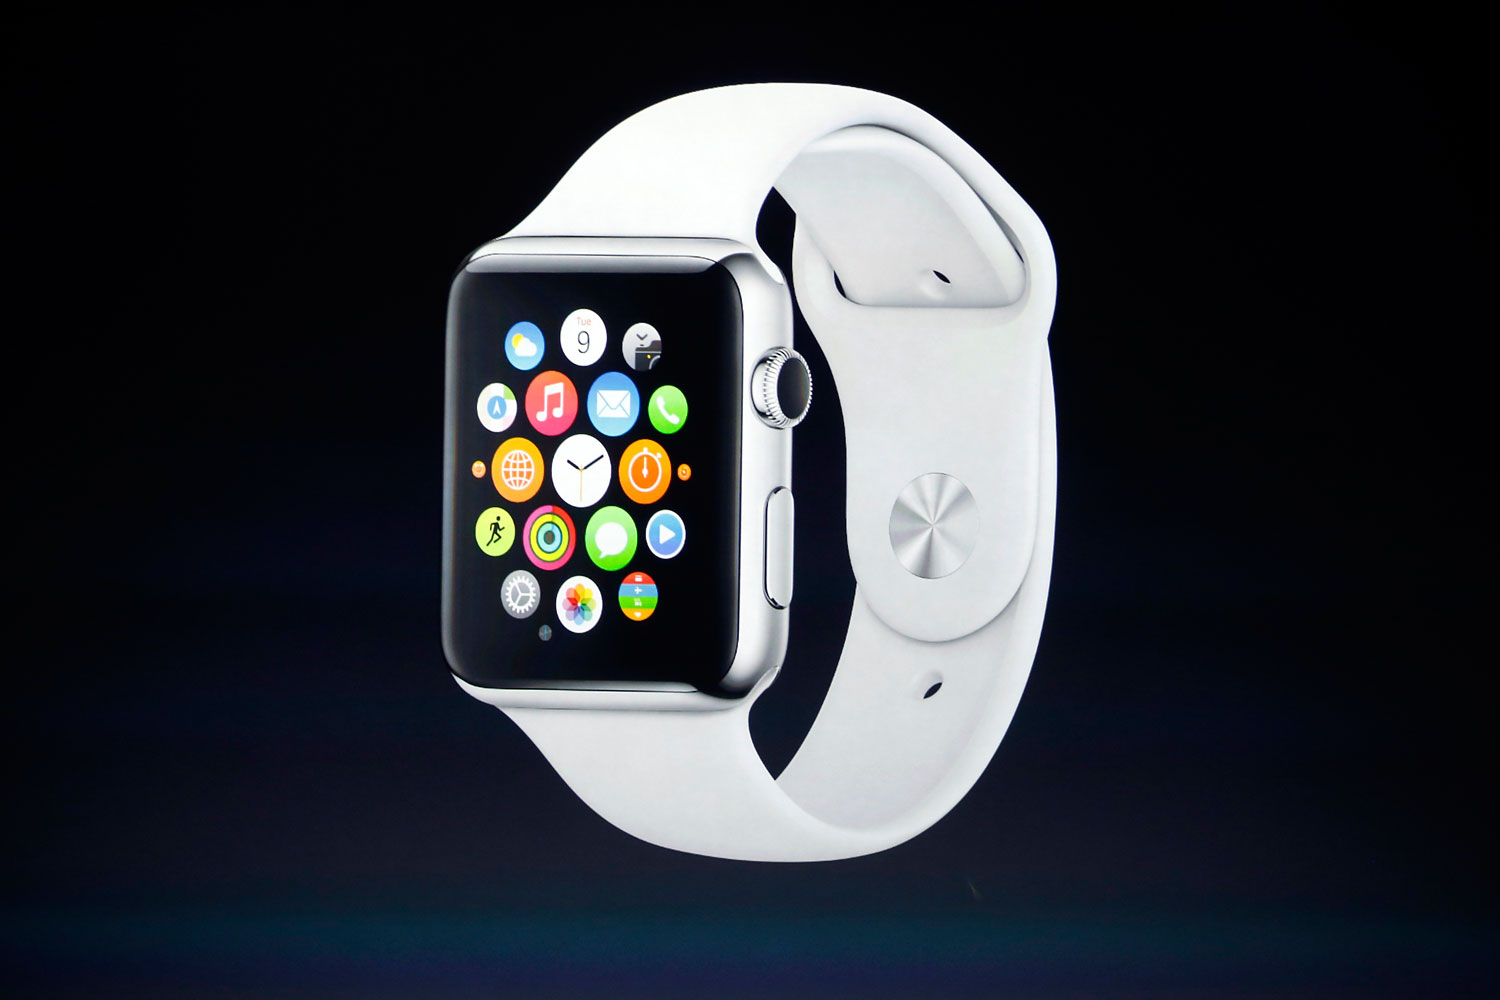 An Apple Watch is seen during an Apple event at the Flint Center in Cupertino, Calif., Sept. 9, 2014.